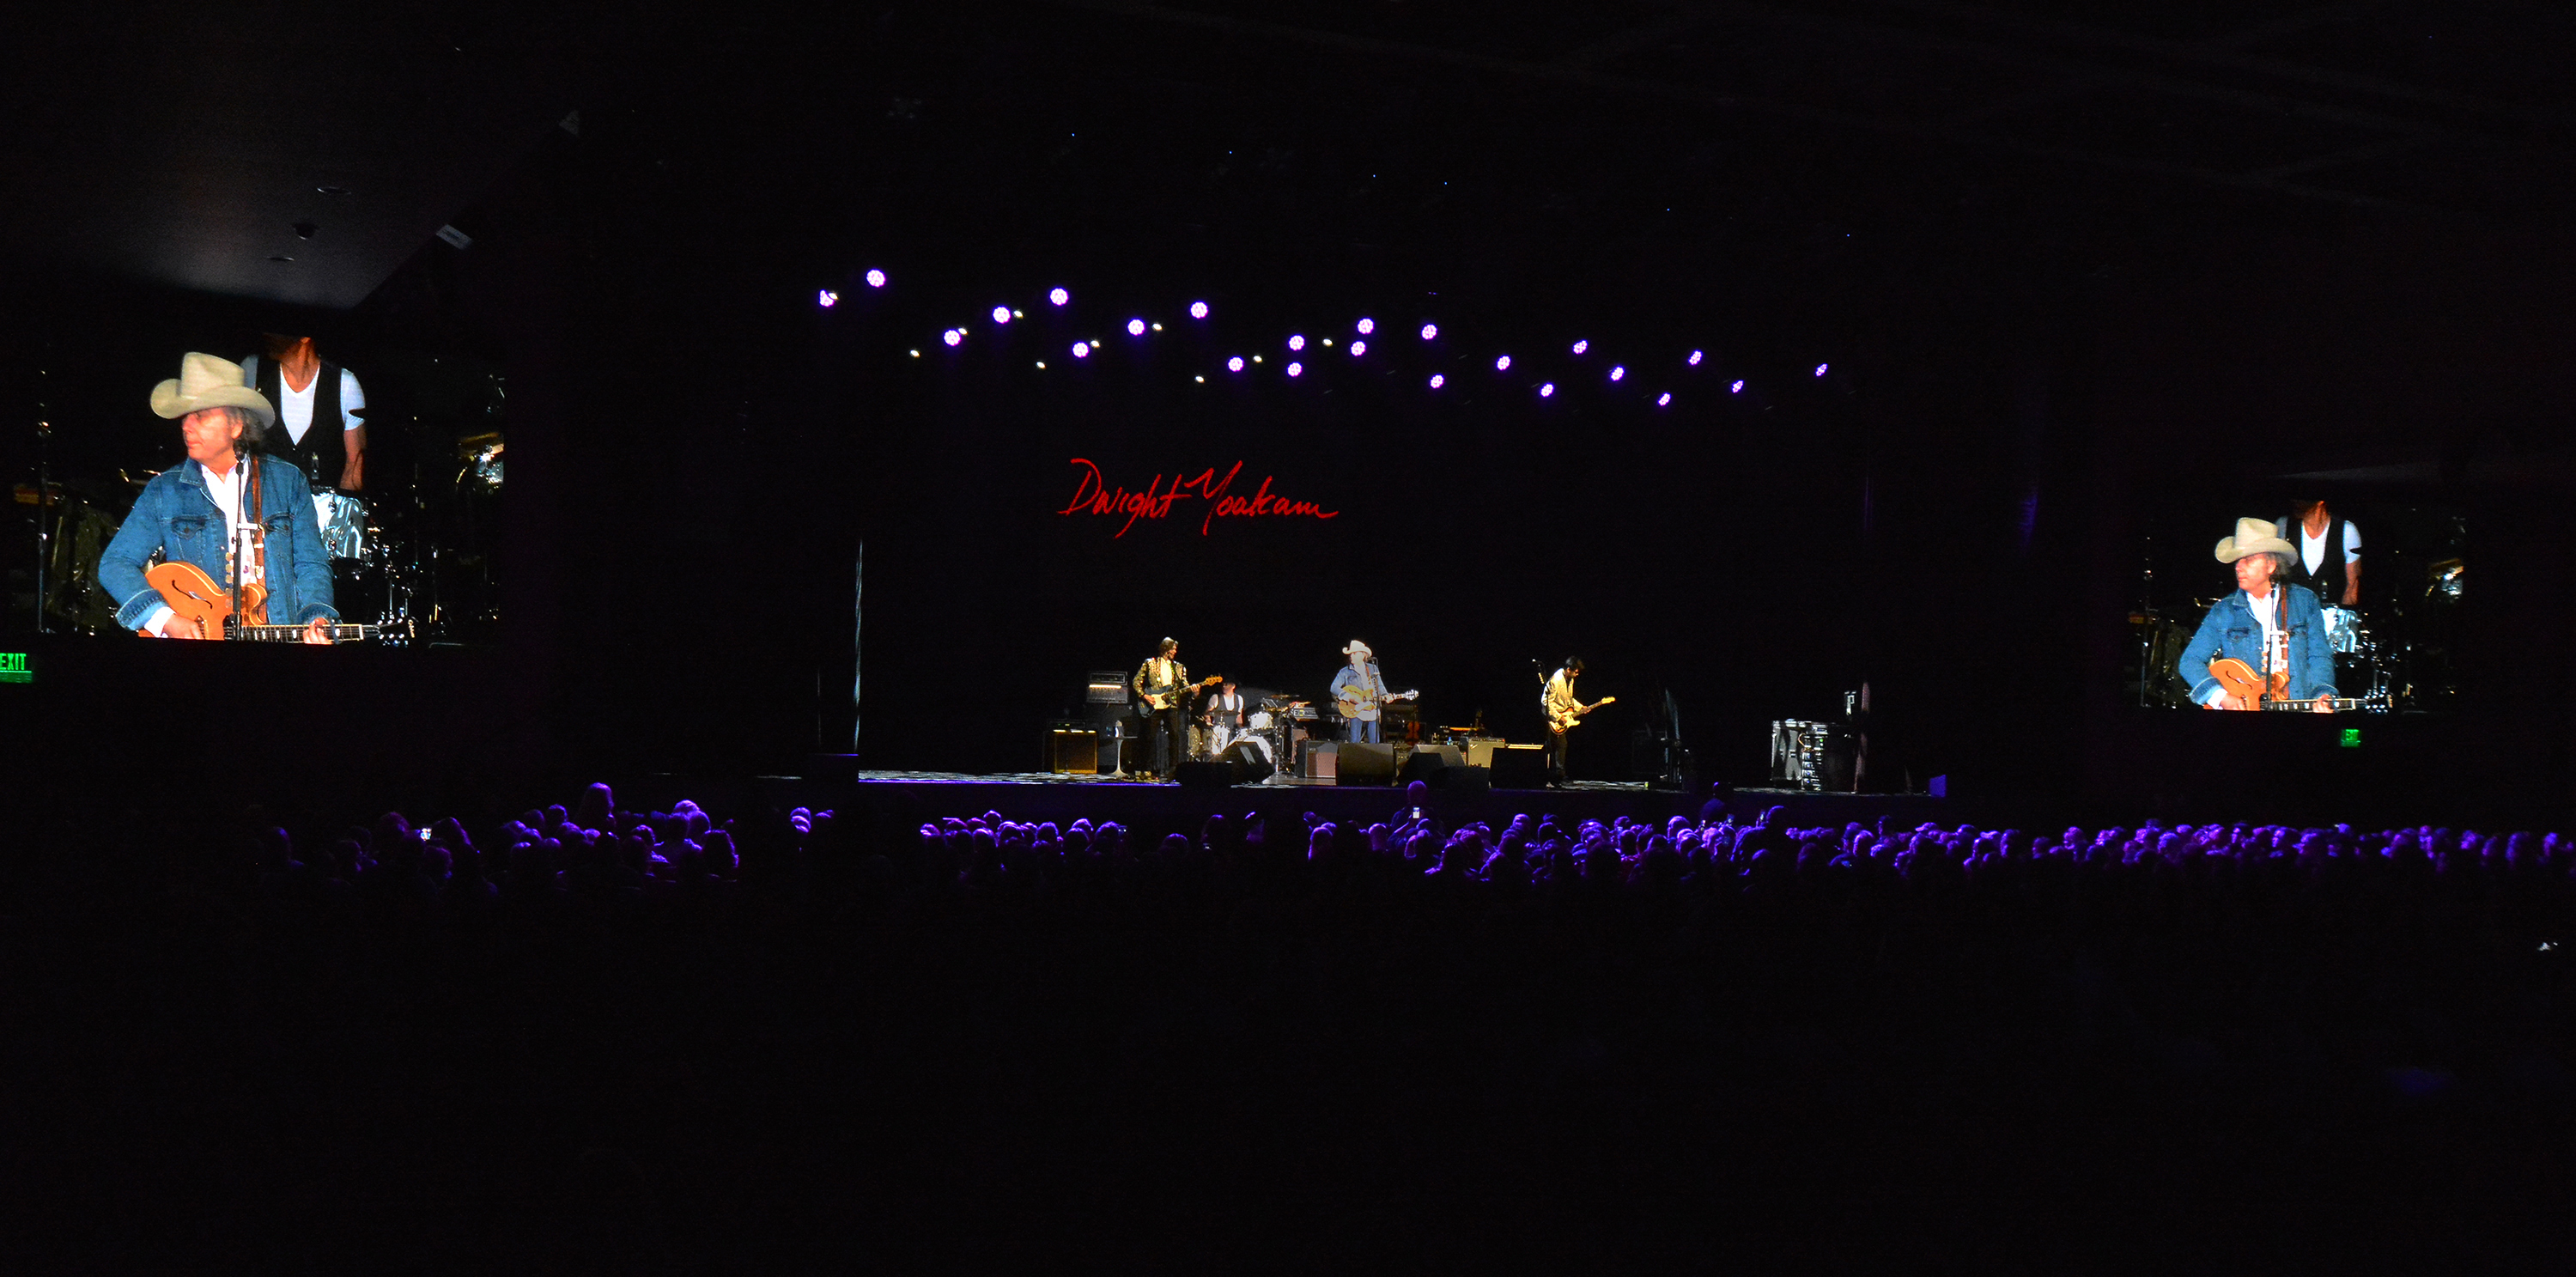 Dwight Yoakam performs at the new Xcite Center at the Parx Casino in Bensalem Pa. on Thursday February 8,,2018. MARK C PSORAS/For the Inquirer